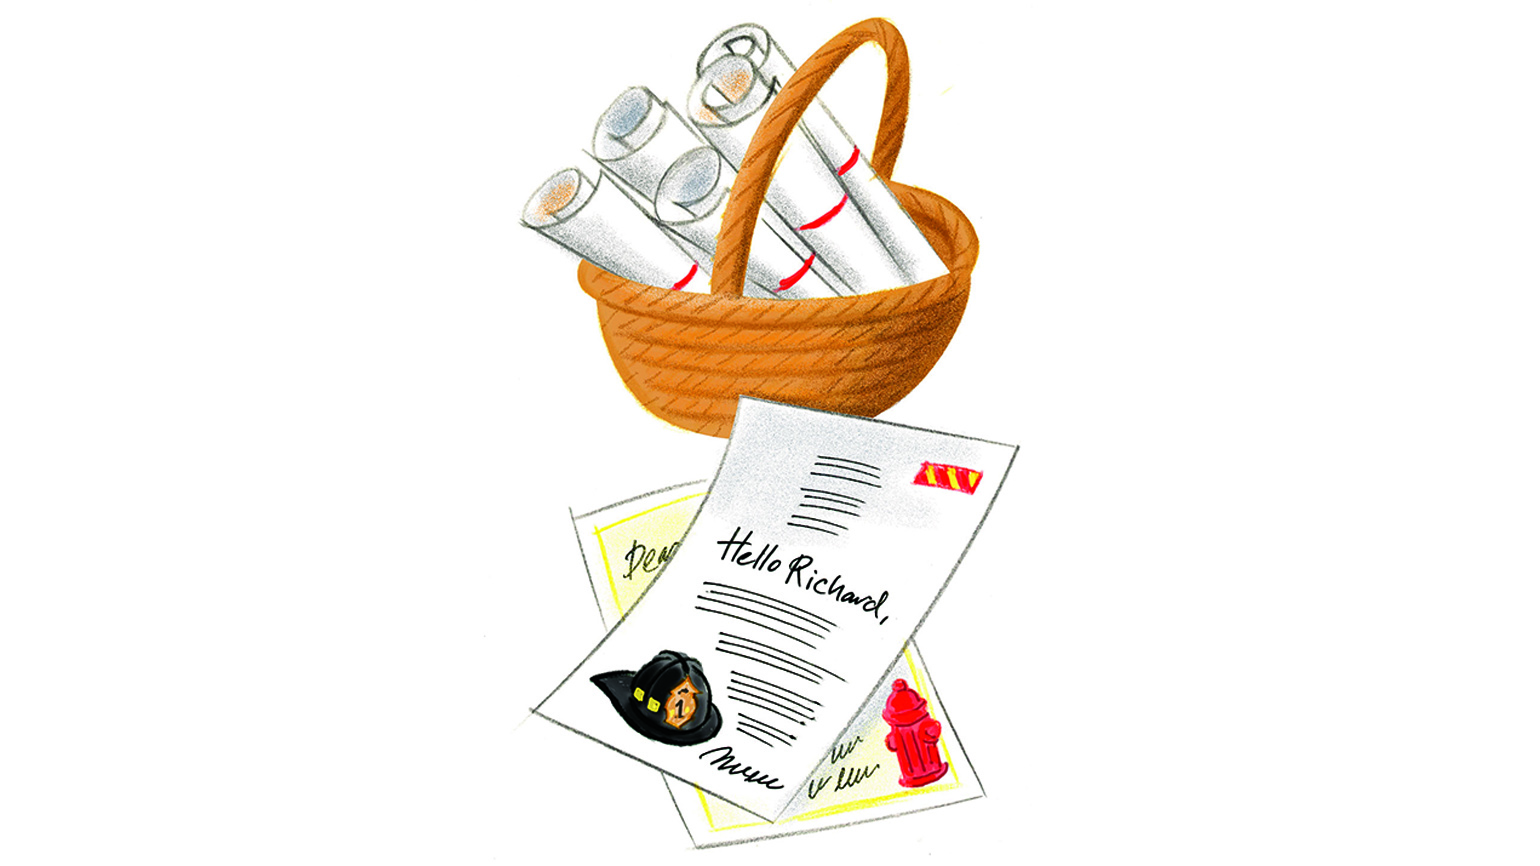 A basket full of letters addressed to Richard, the fireman.